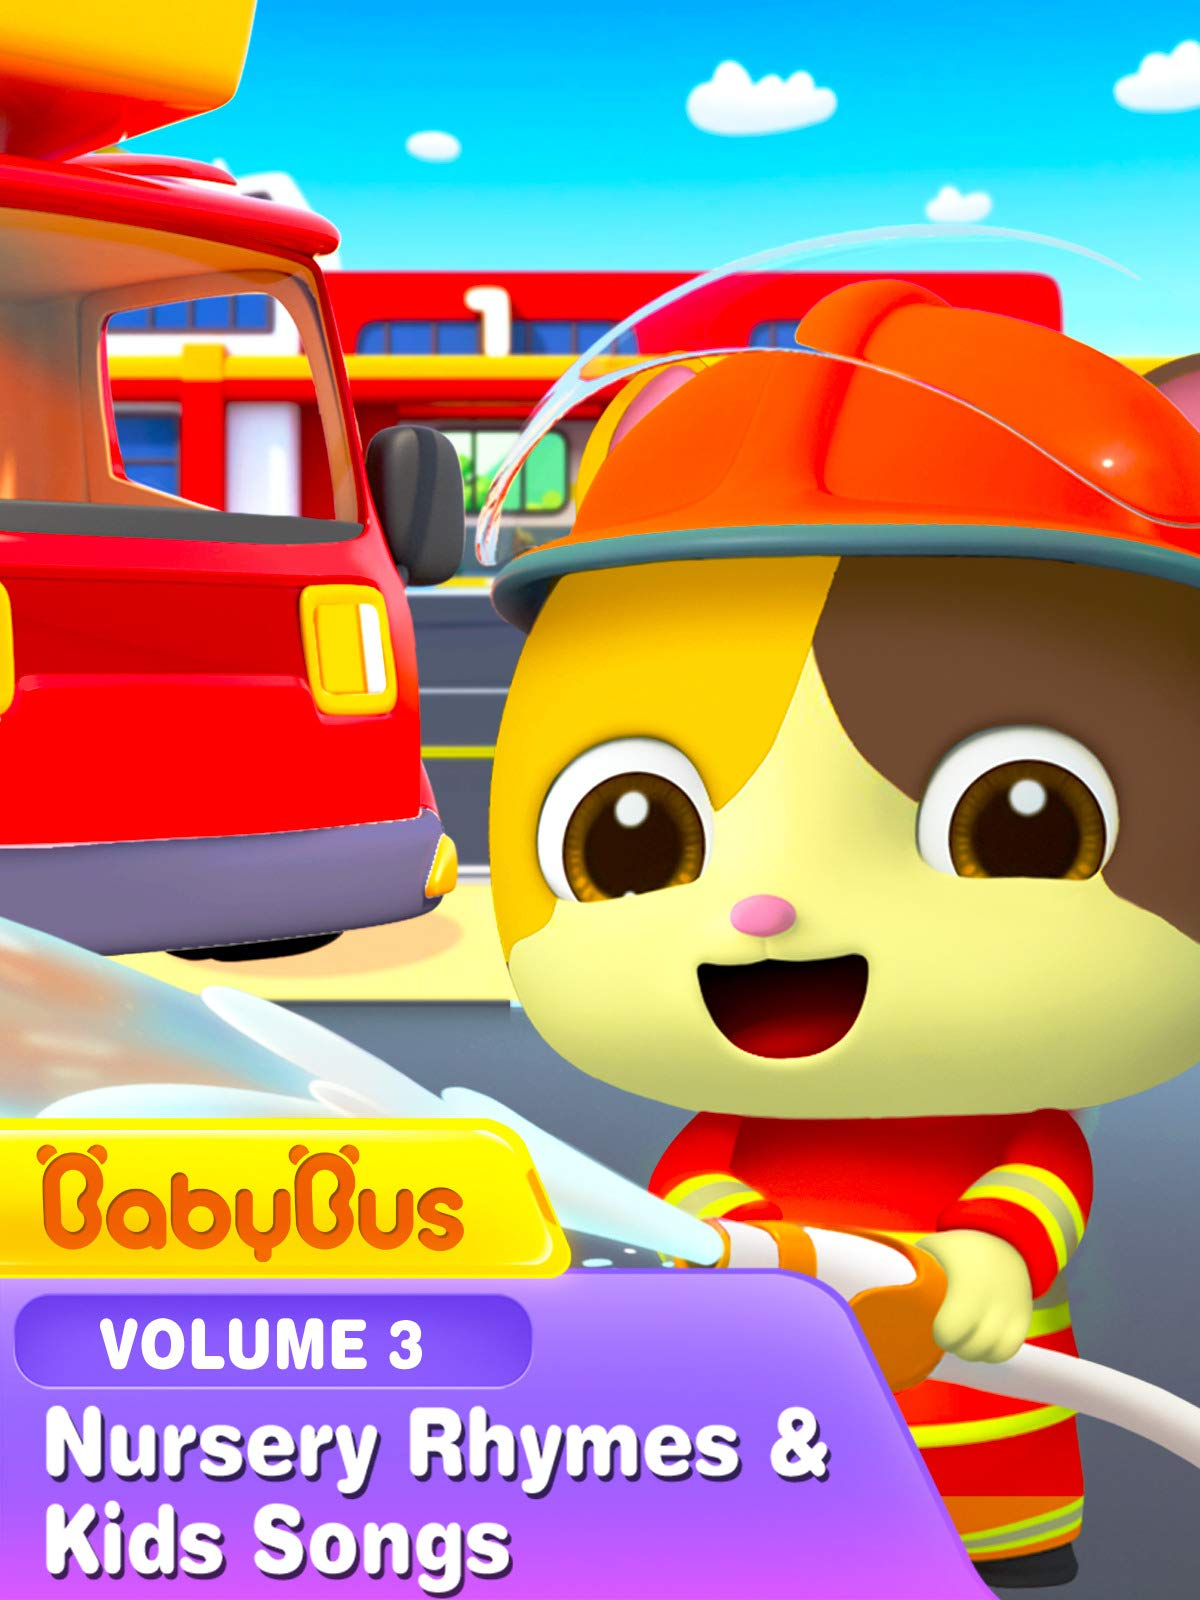 BabyBus - Nursery Rhymes & Kids Songs (VOLUME 3)